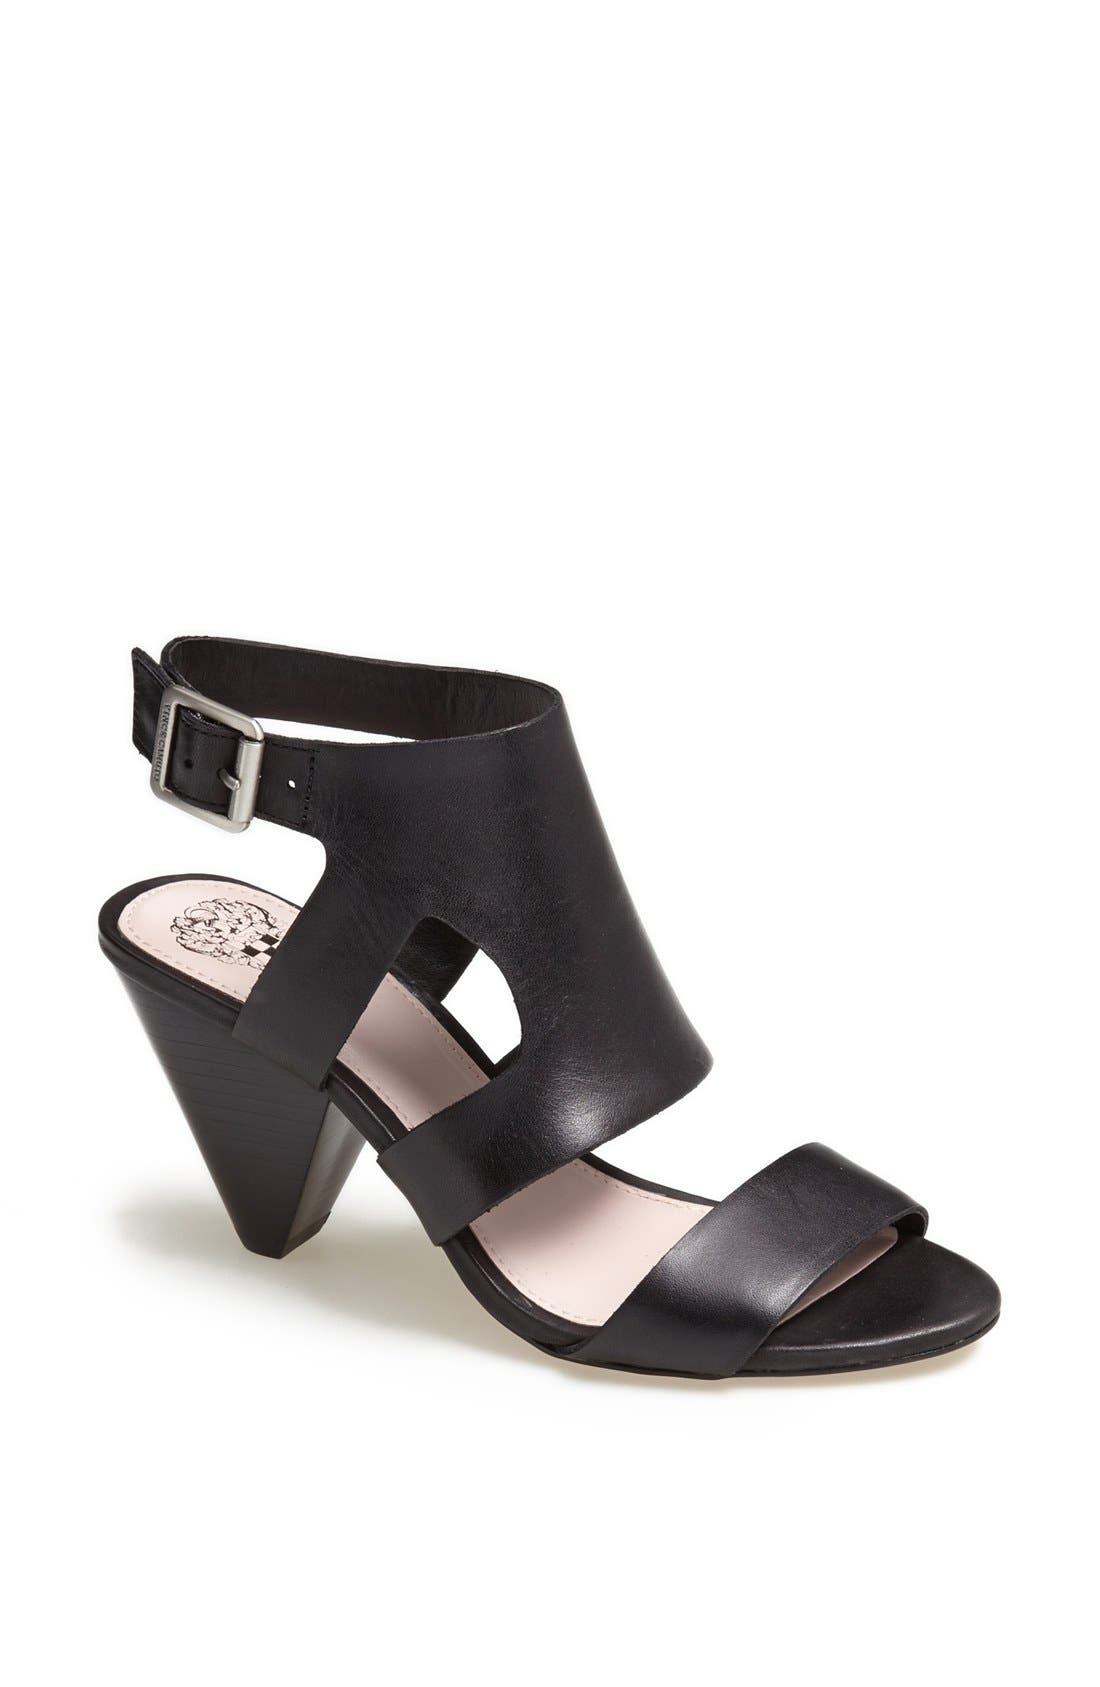 Main Image - Vince Camuto 'Endell' Leather Sandal